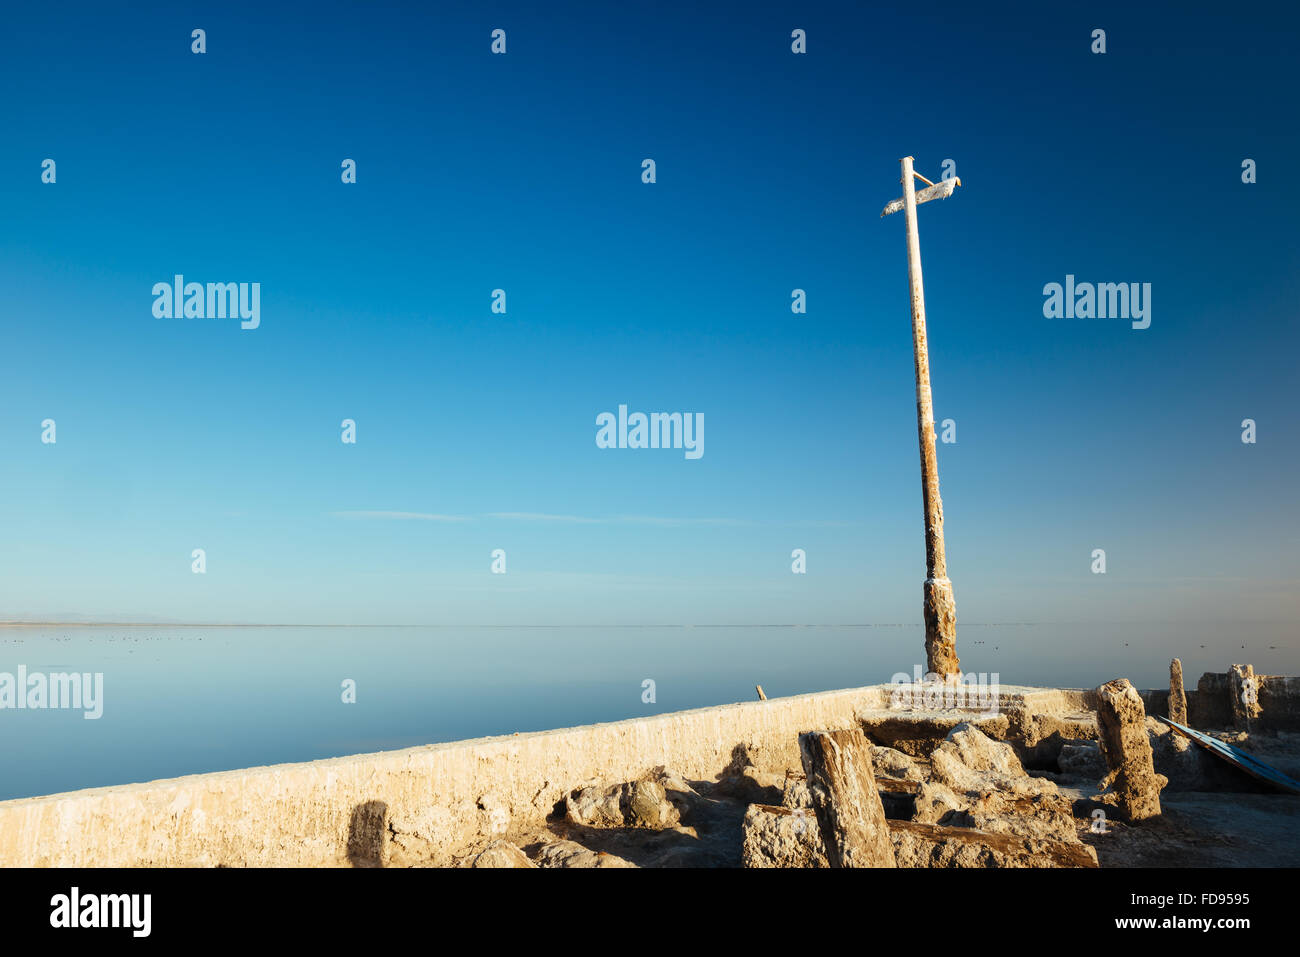 Salt-encrusted ruins on Bombay Beach, on the eastern shore of the Salton Sea, California - Stock Image